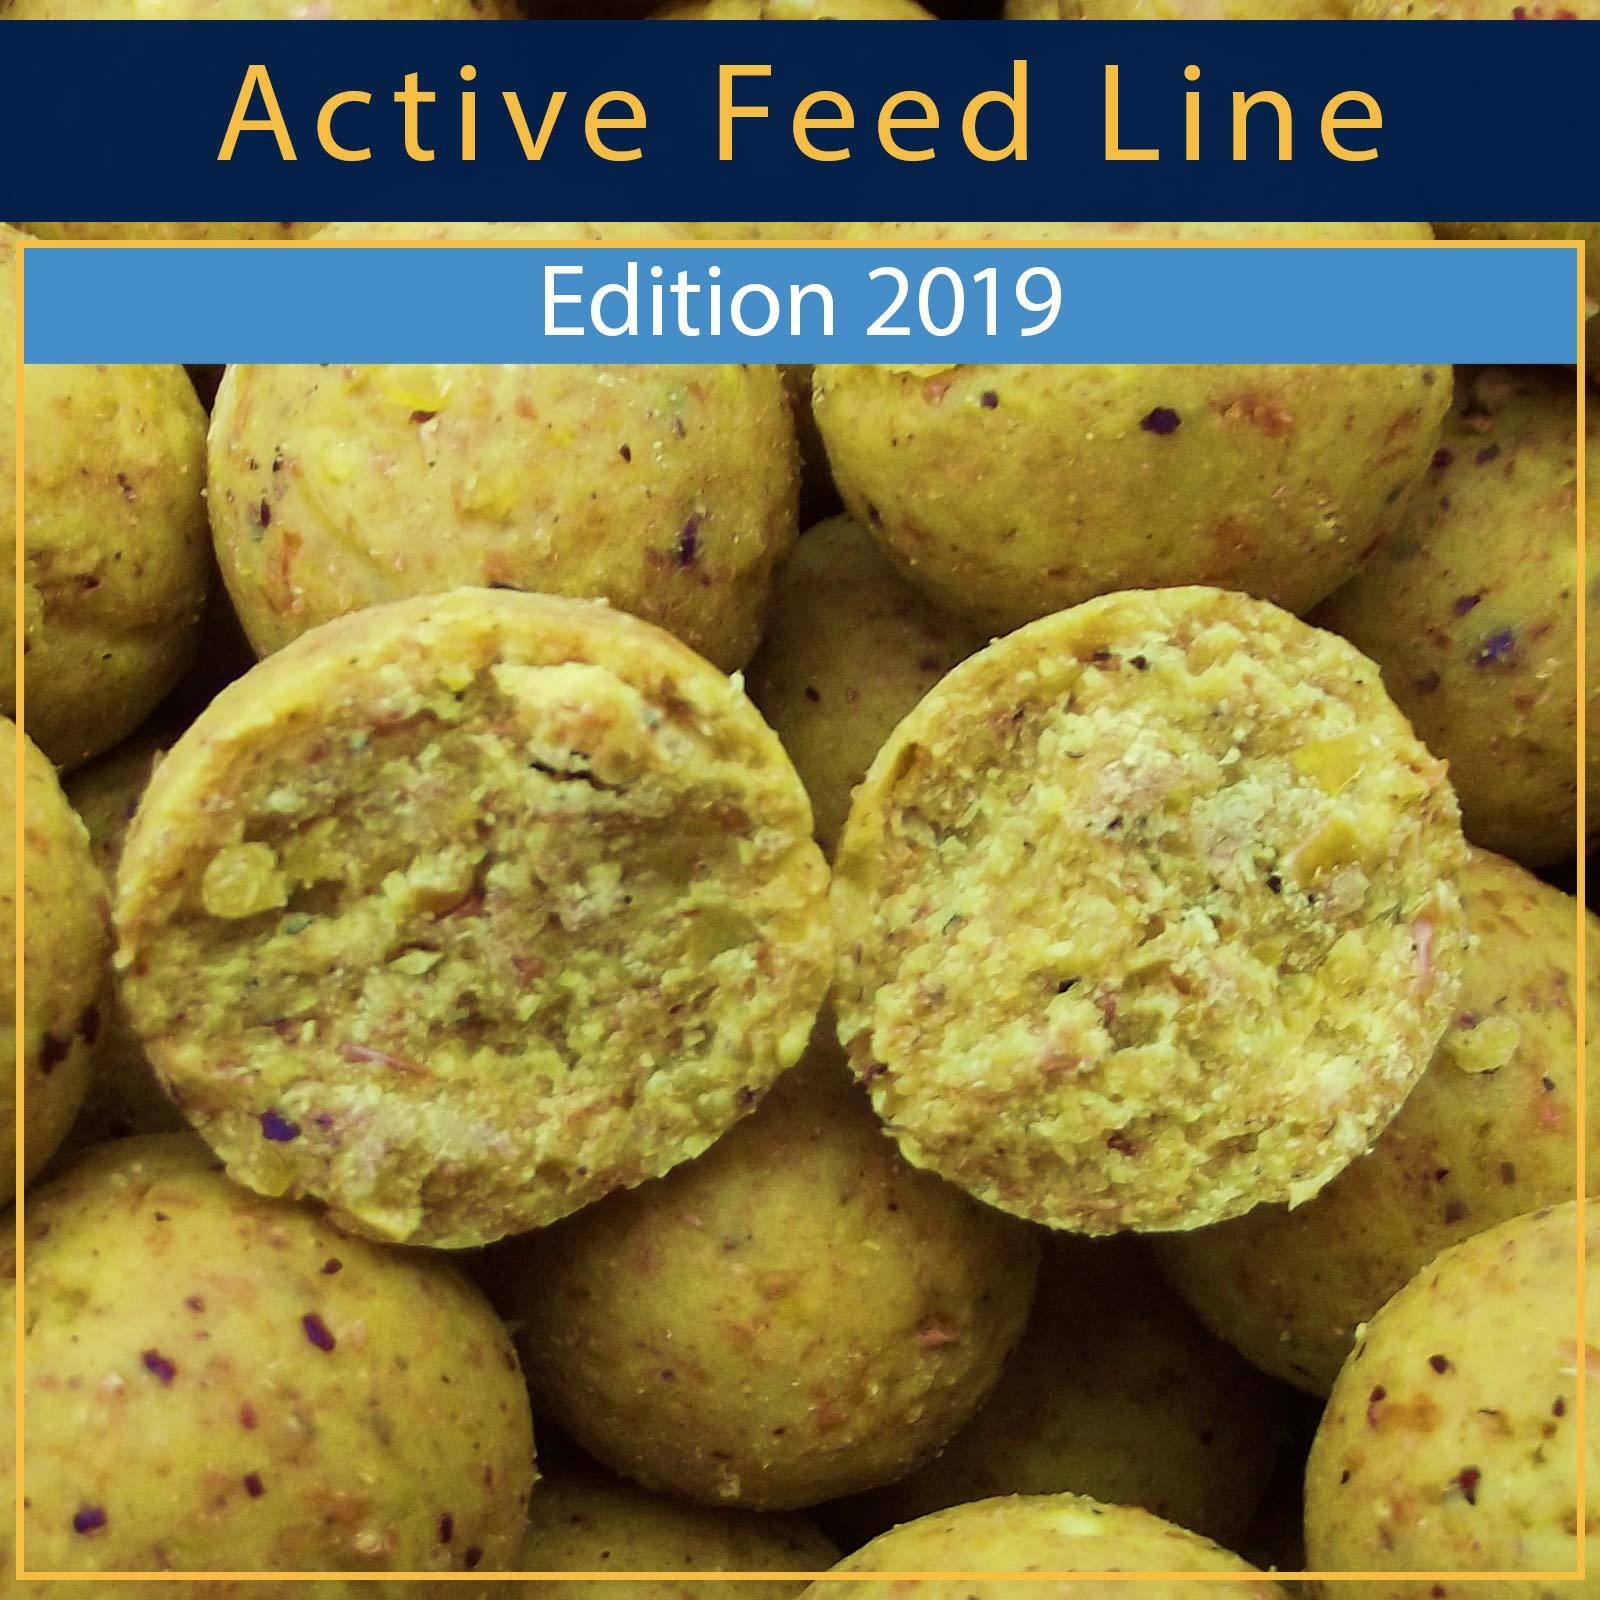 -- DEEP WATER BAITS BOILIES -- ACTIVE FEED LINE -- SCOPEX PINEAPPLE 20 KG --